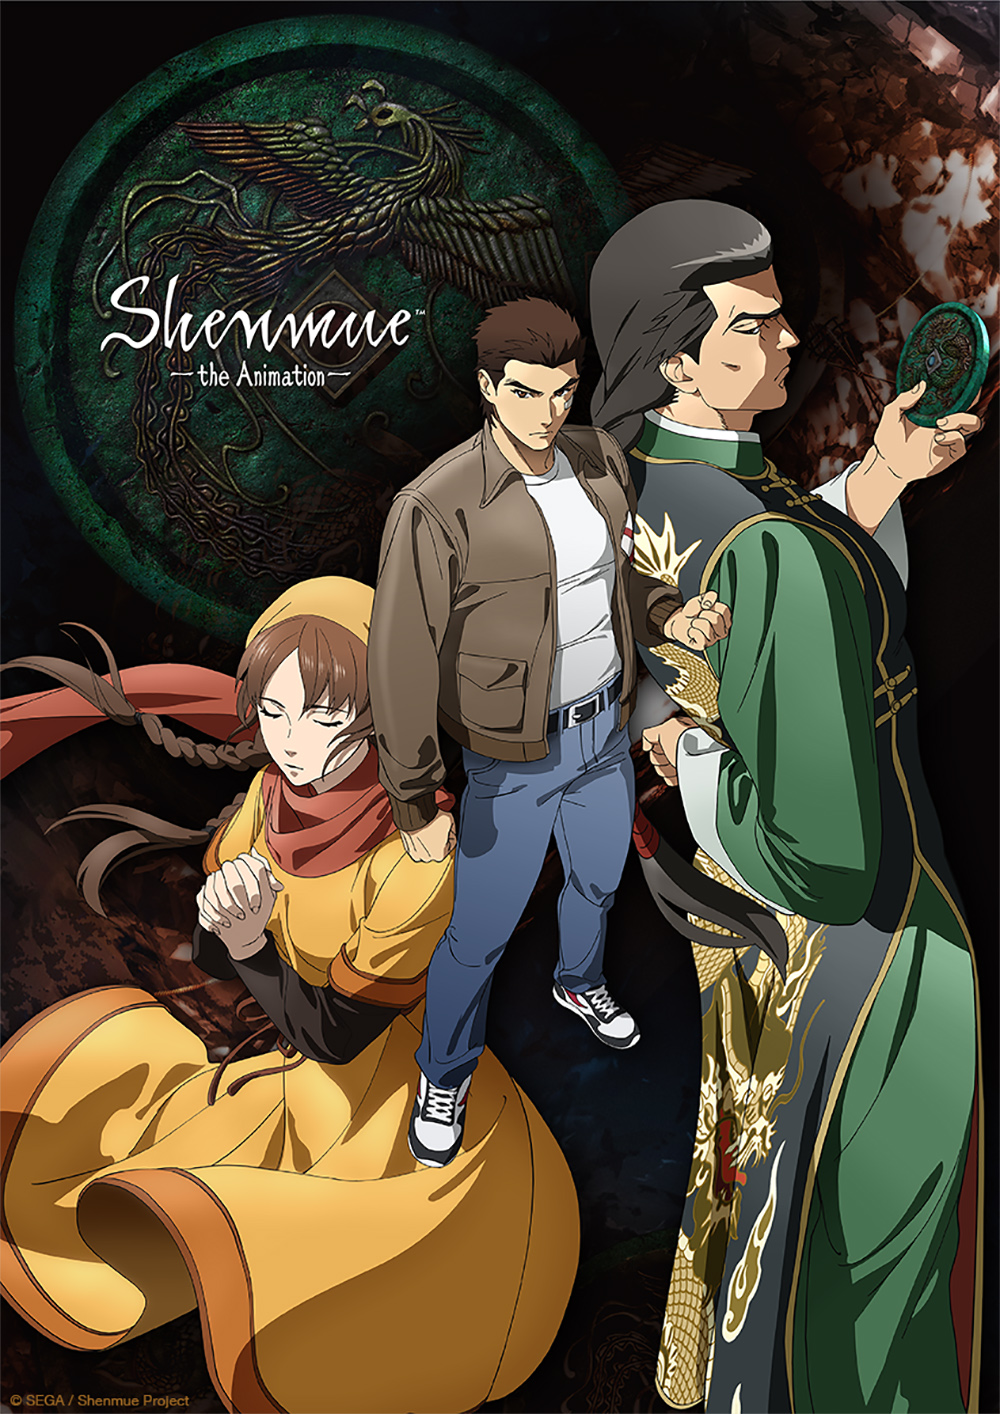 Shenmue anime series announced